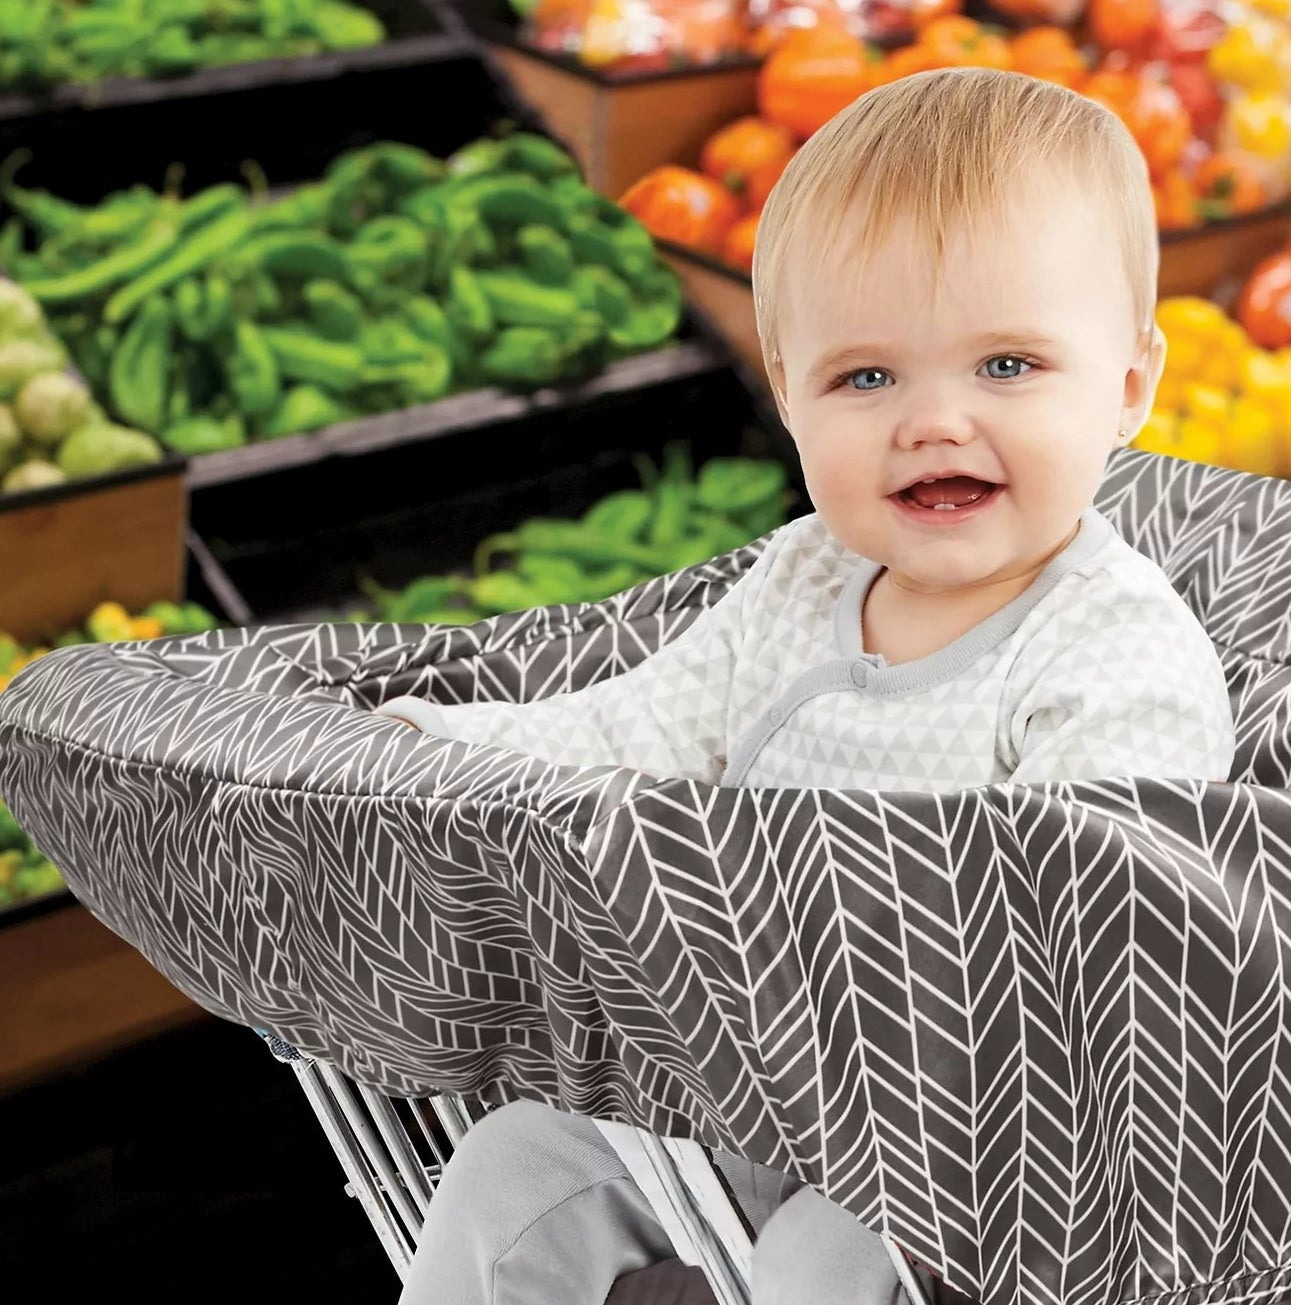 A baby in a shopping cart lined with a gray, padded cover